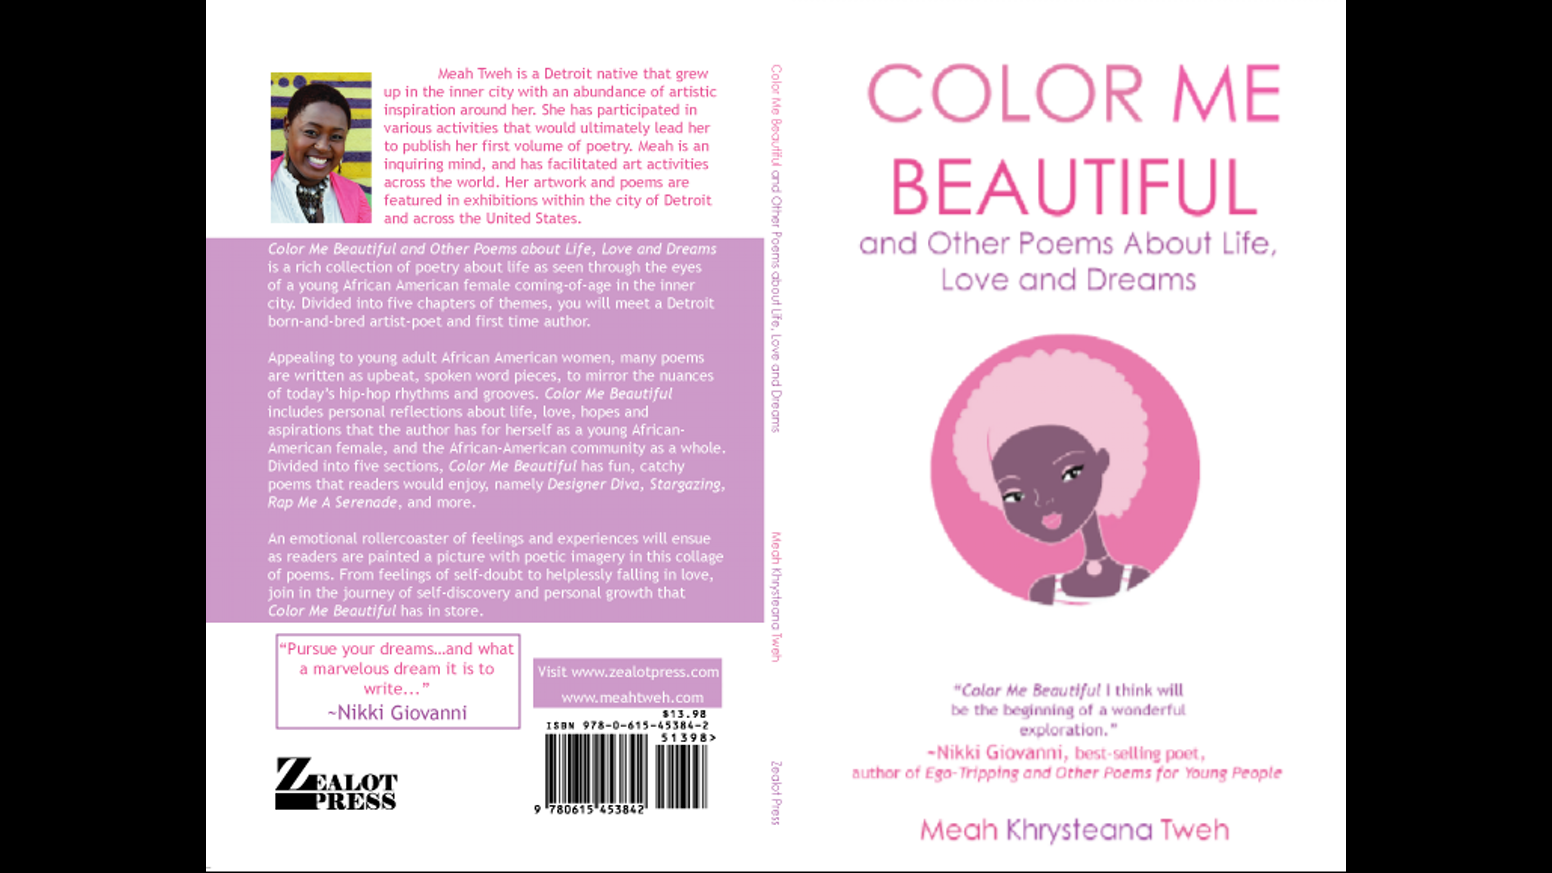 book color me beautiful : Color Me Beautiful Poetry Book Release Party Afterglow